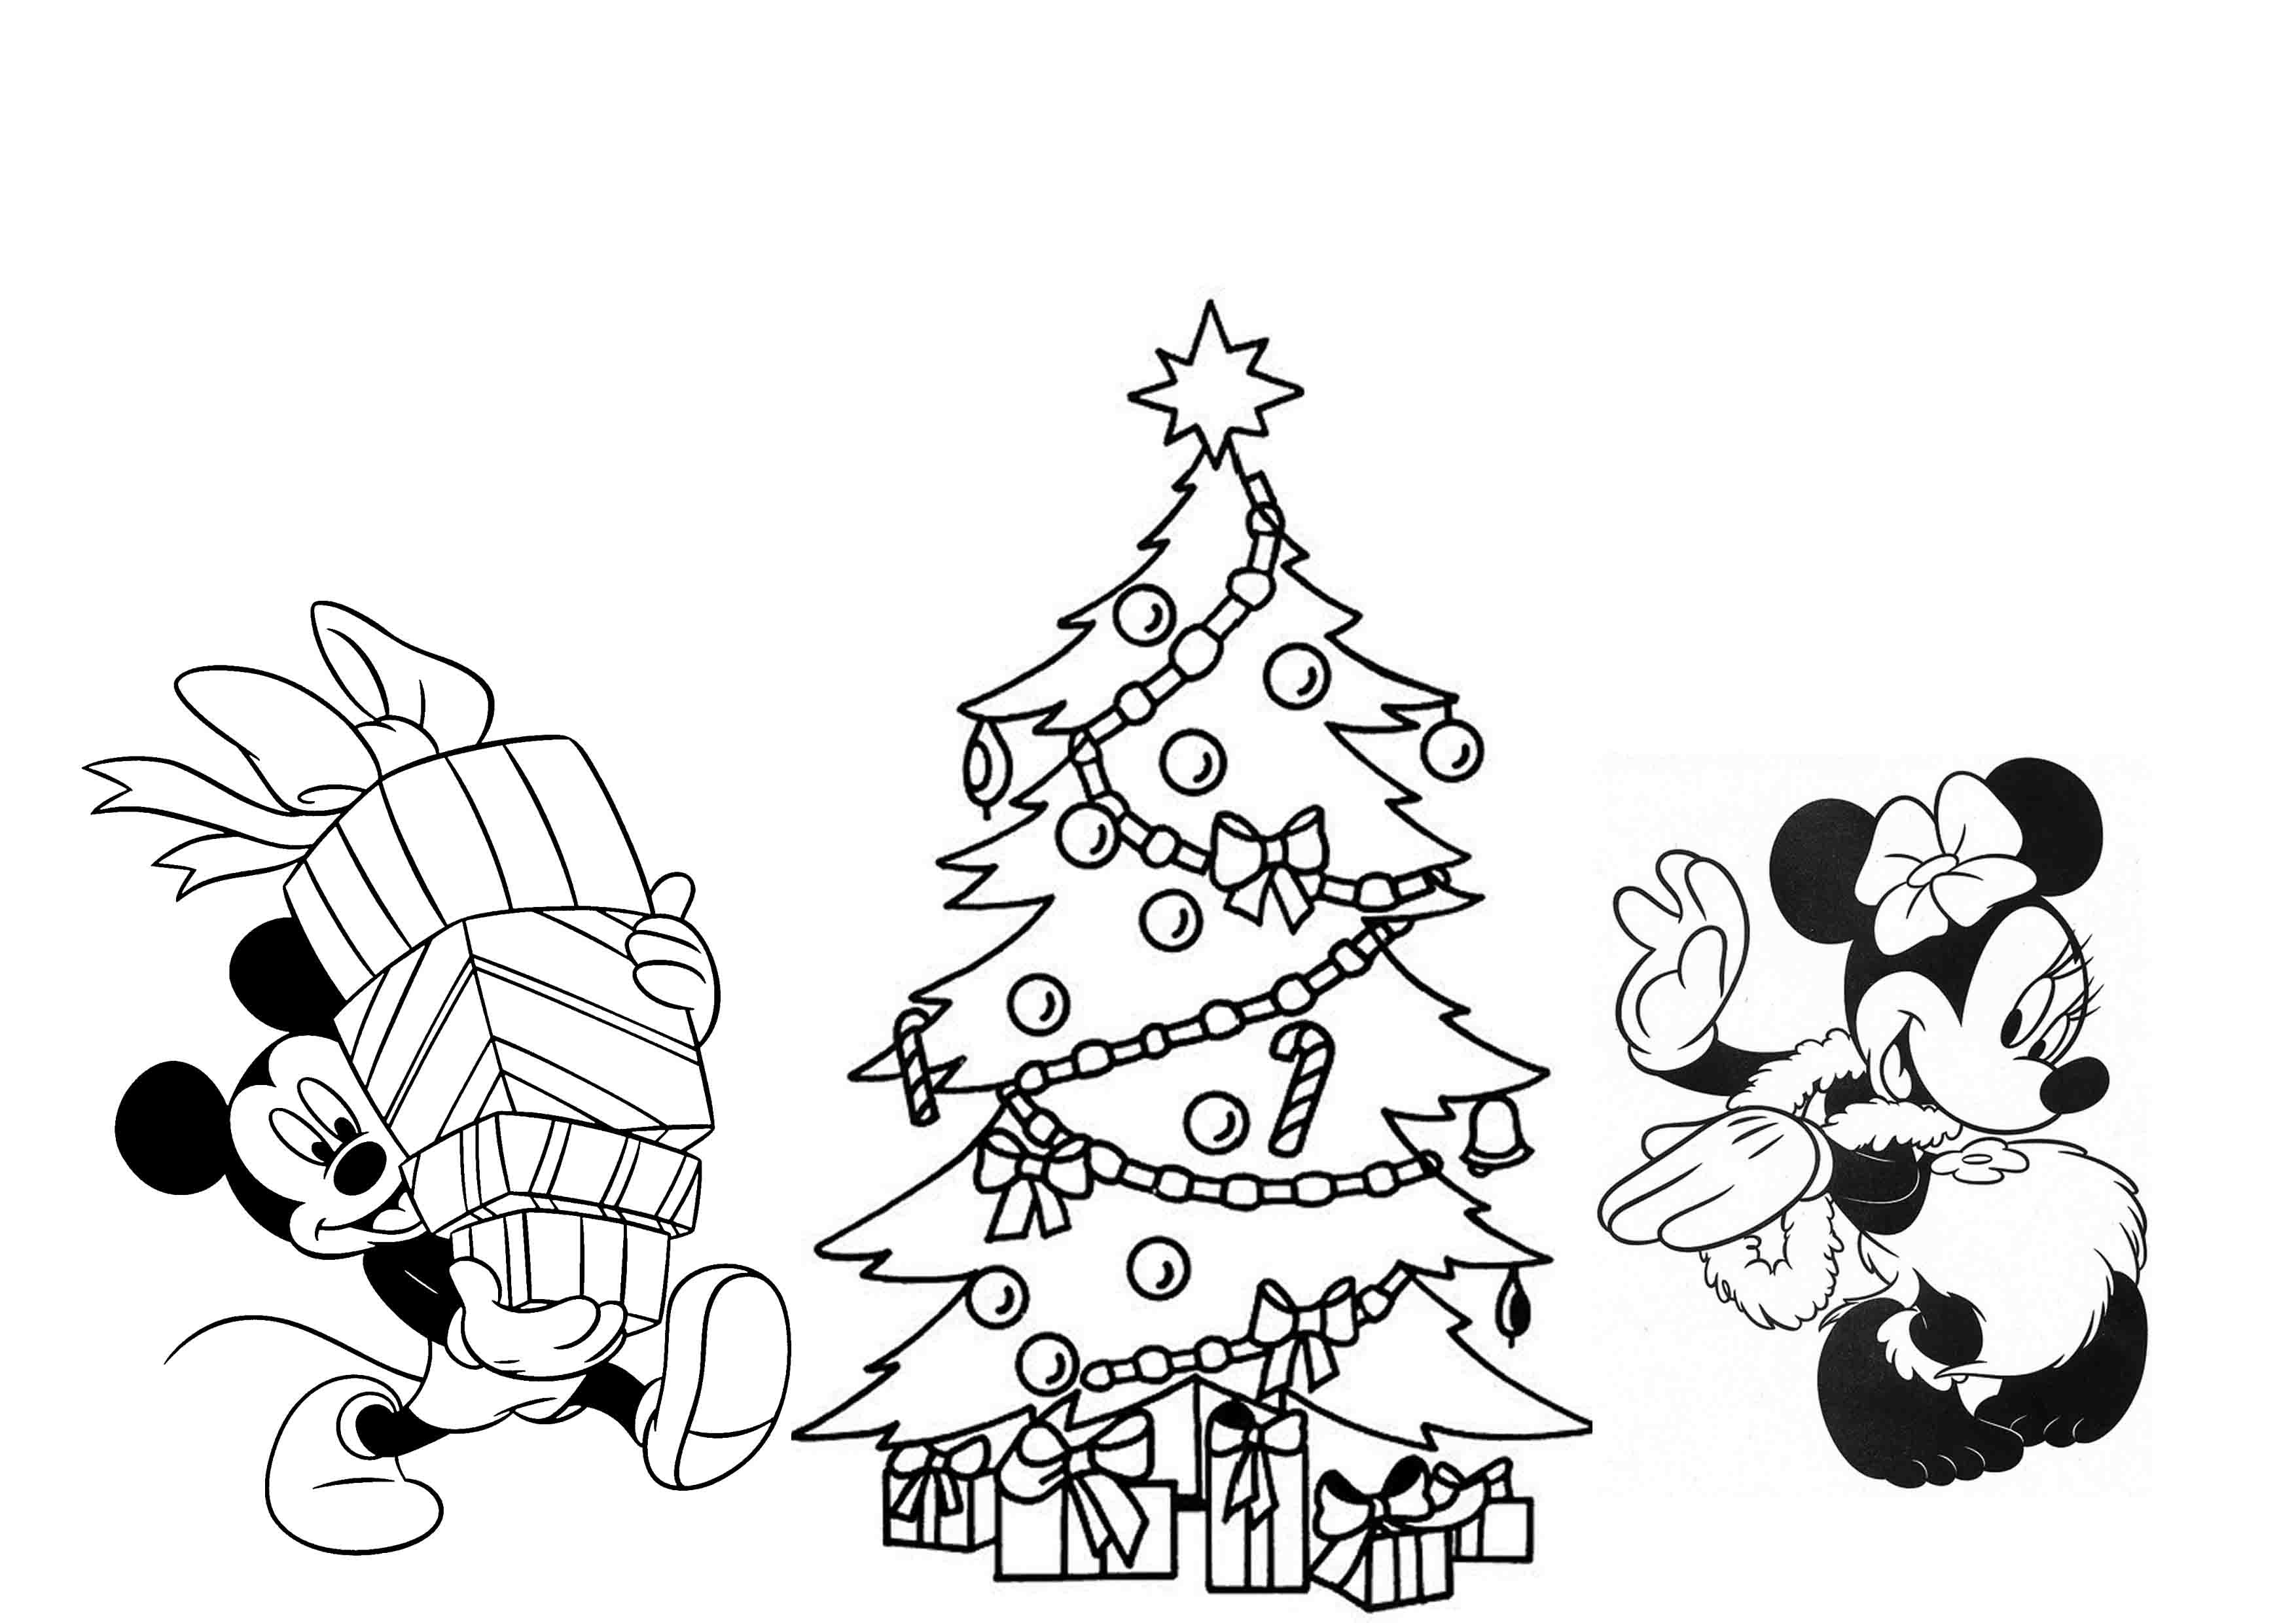 Holiday Coloring Pages For Kids  Print & Download Printable Christmas Coloring Pages for Kids